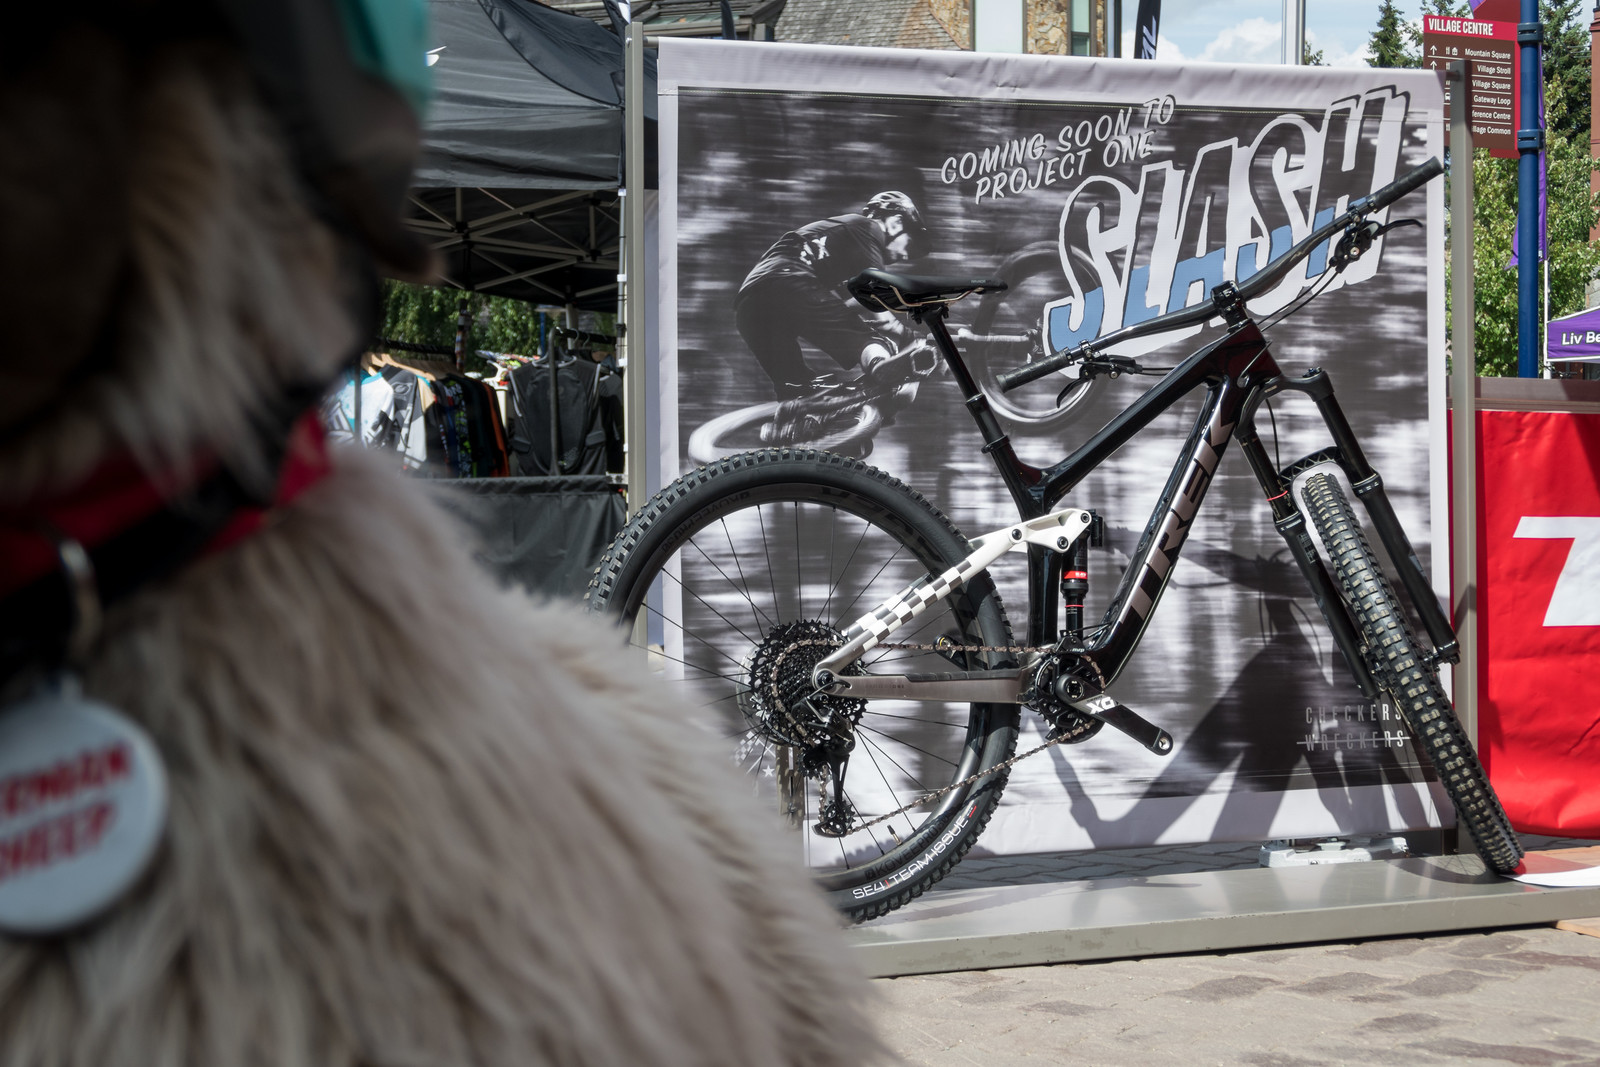 Trek Slash Coming Soon to Project One - PIT BITS - 2019 Crankworx Whistler Bikes and Tech - Mountain Biking Pictures - Vital MTB